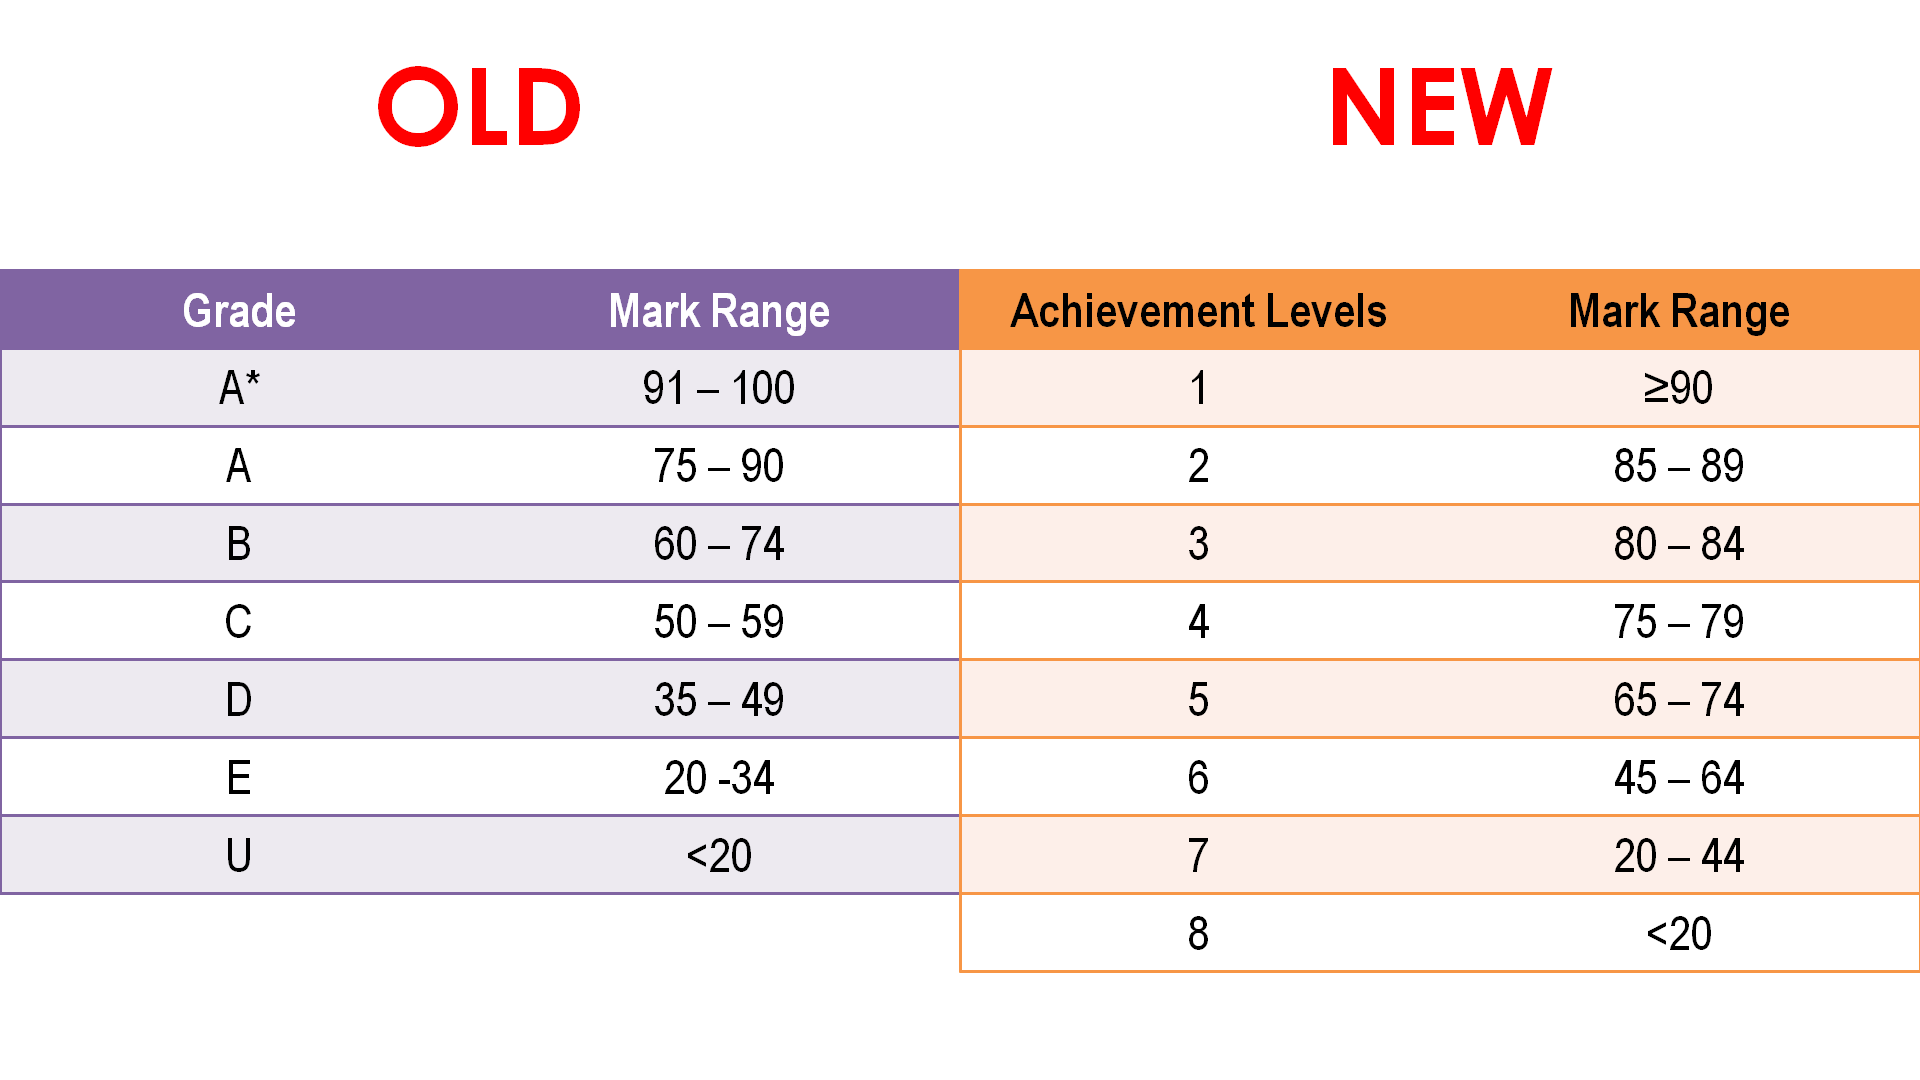 Old vs New PSLE Grading Achievement Levels